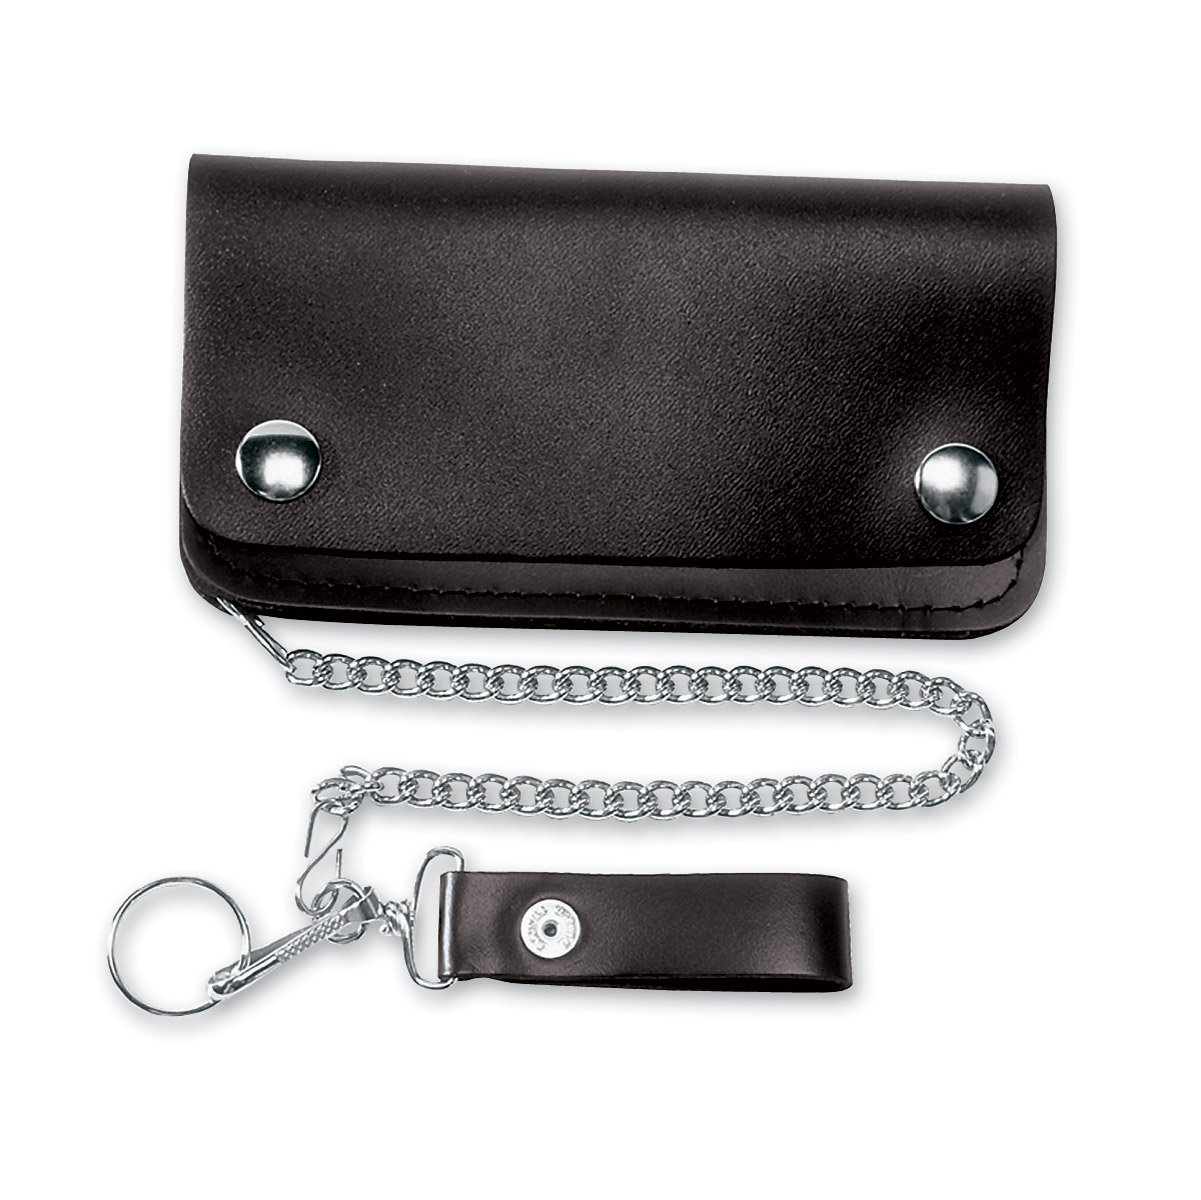 Carroll Leather 7″ Five-Pocket Chain Wallet